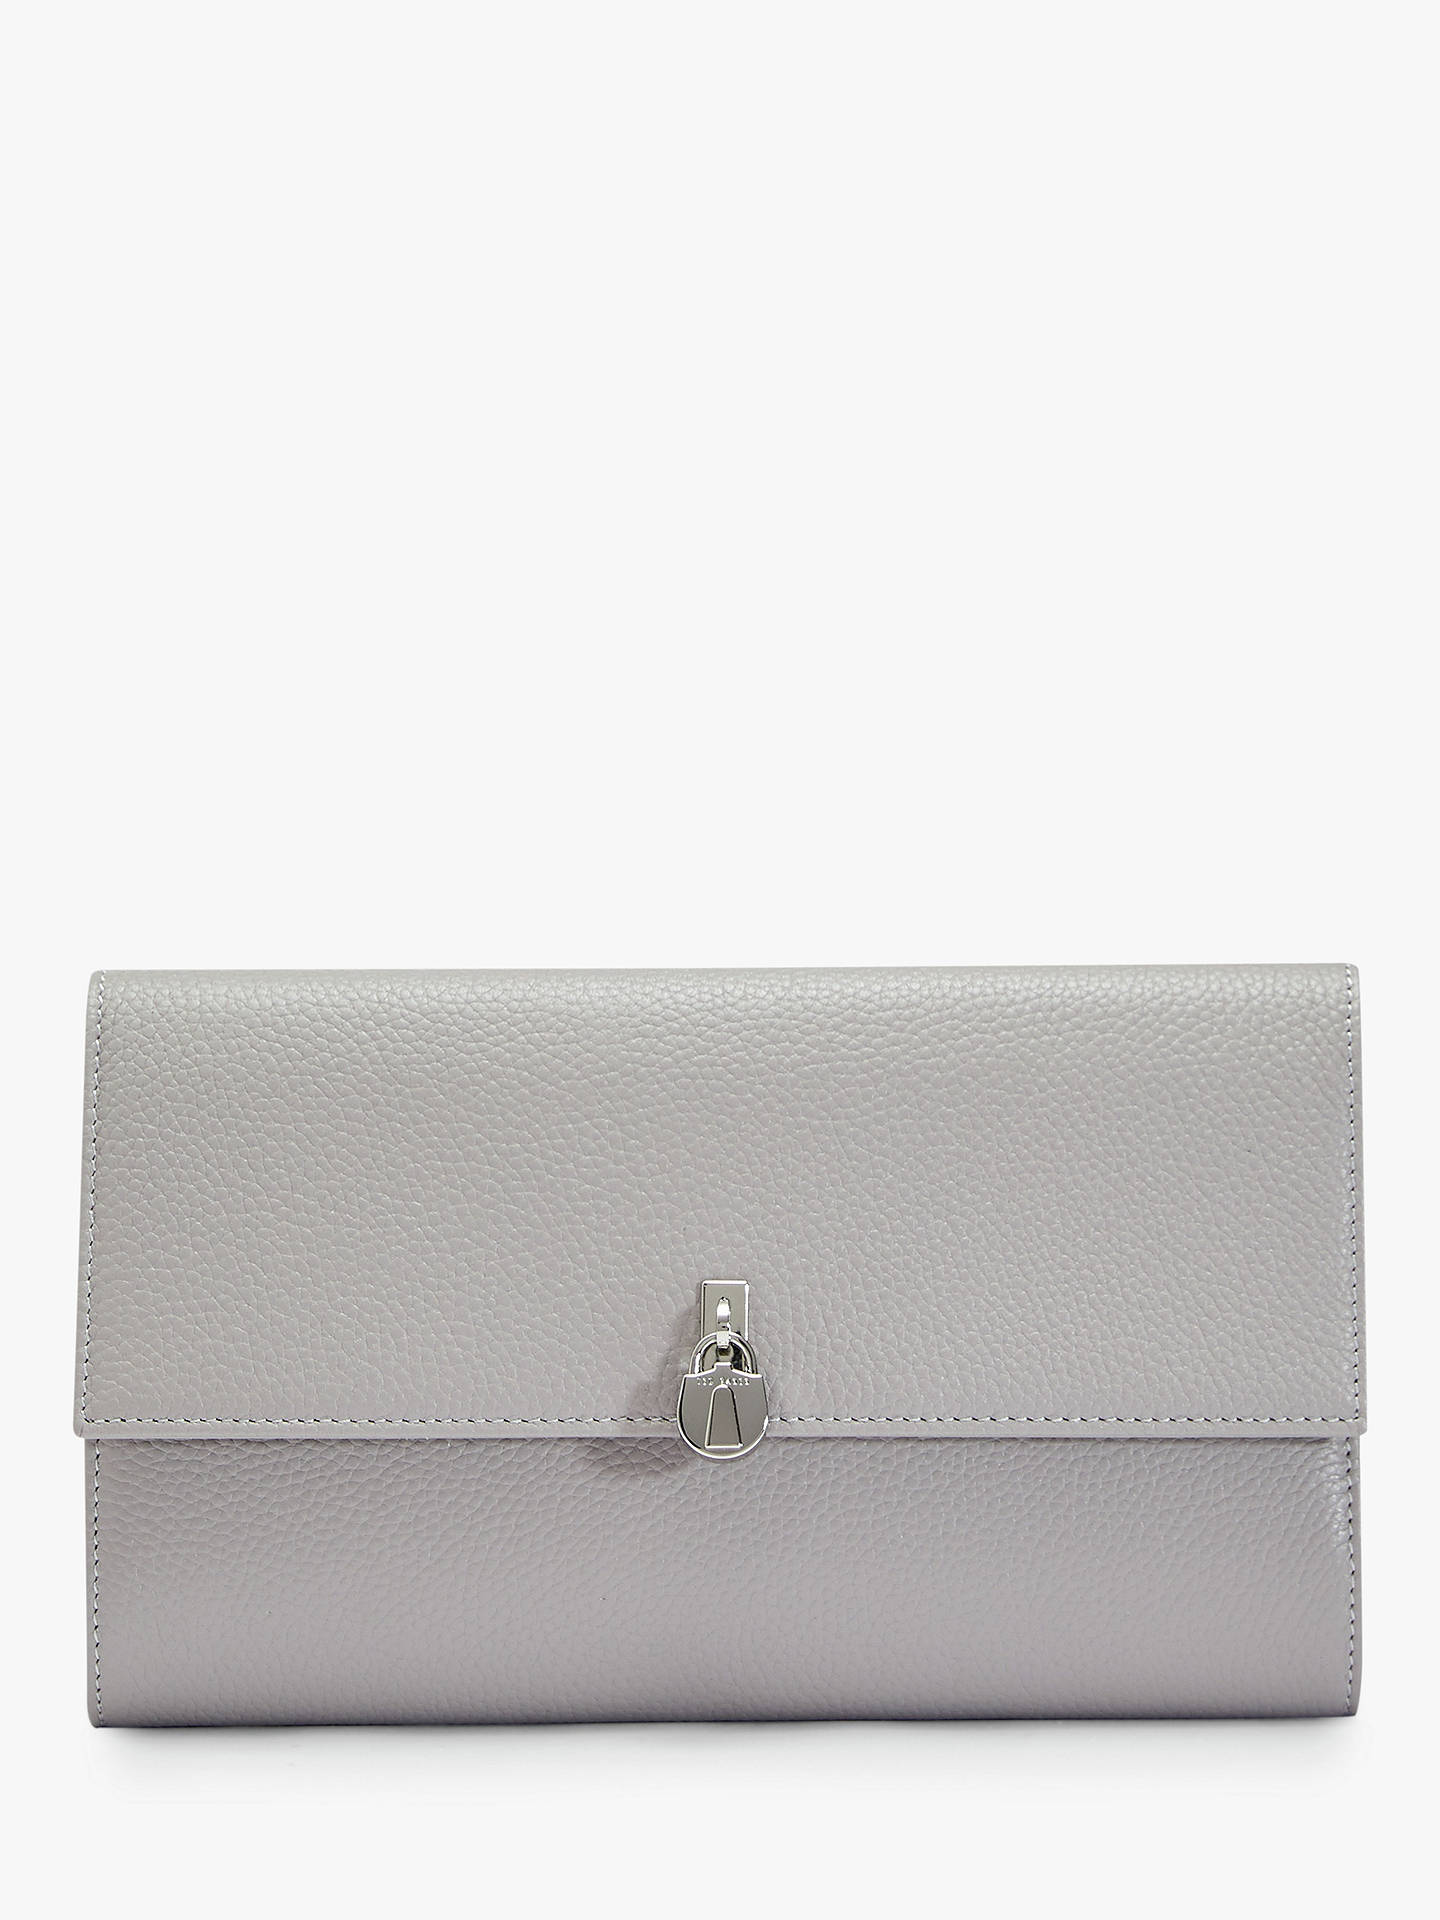 Ted Baker Rosem Leather Travel Document Wallet, Mid Grey by Ted Baker